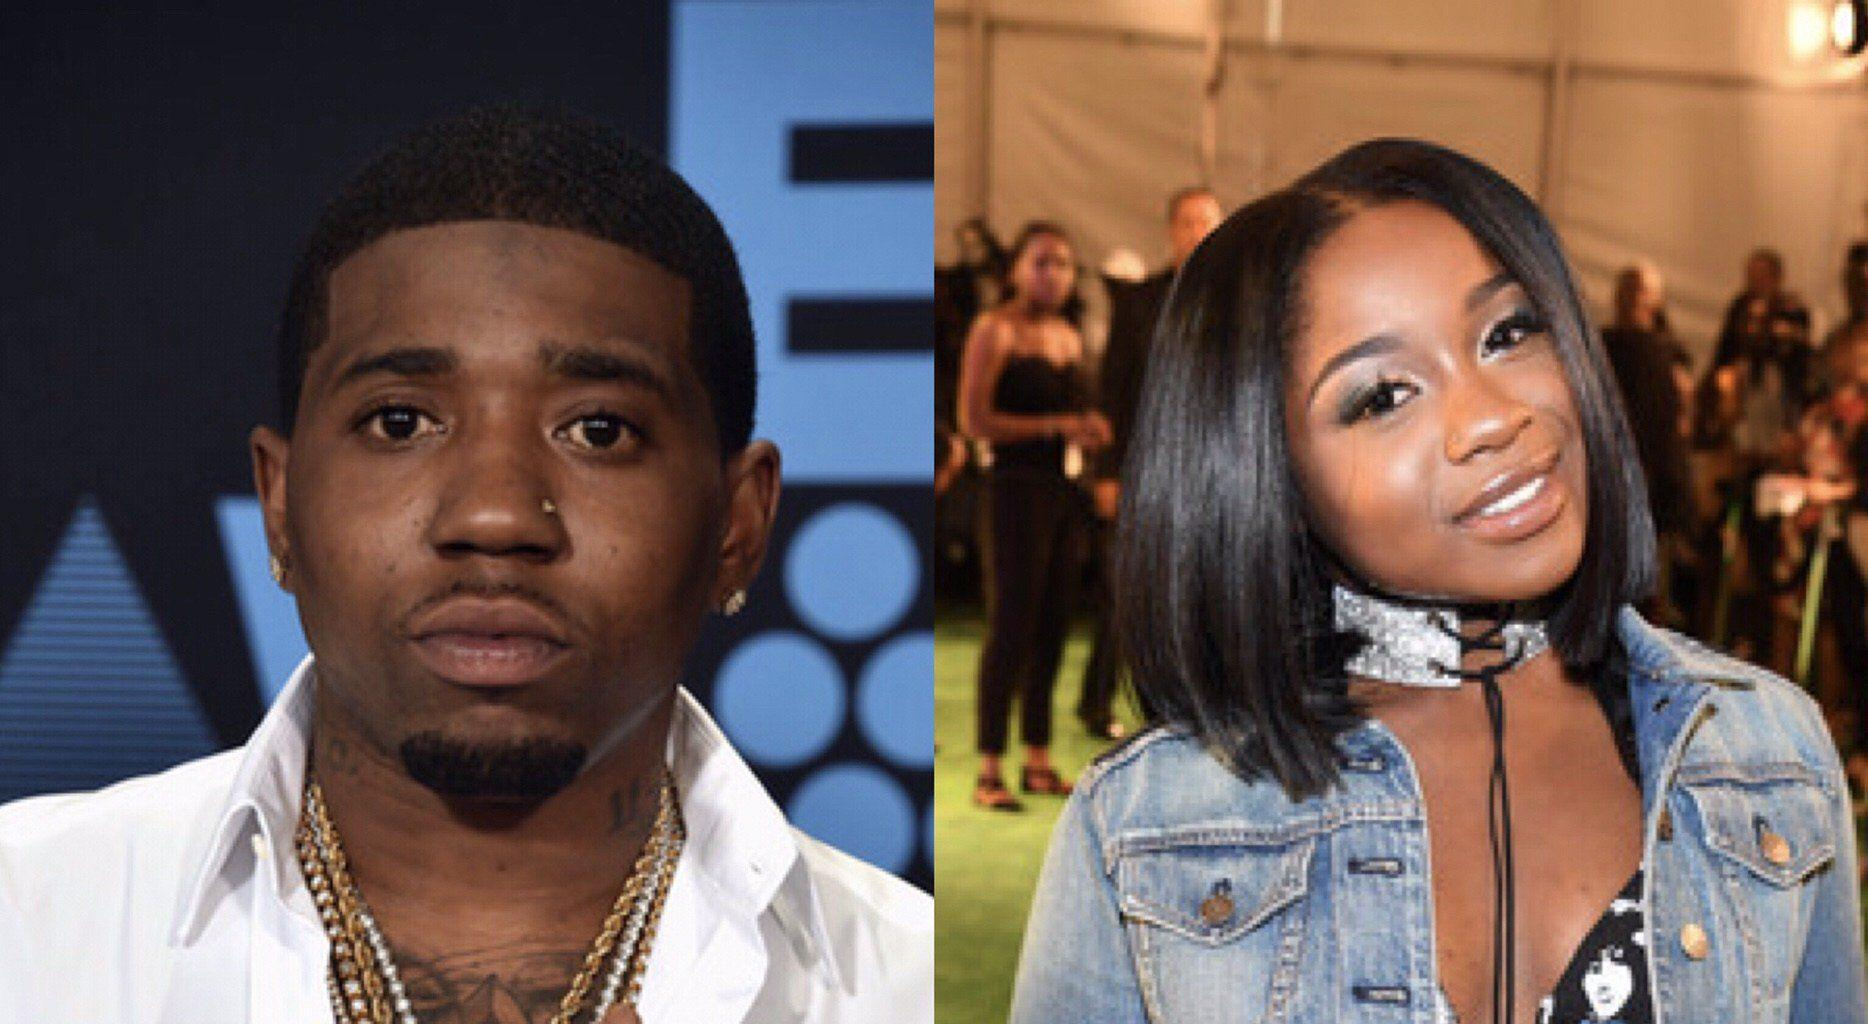 Reginae Carter Is Back Together With Her Boo, YFN Lucci - Here's The Video Of Them Hanging Out - Some Fans Don't Believe She's Happy Anymore